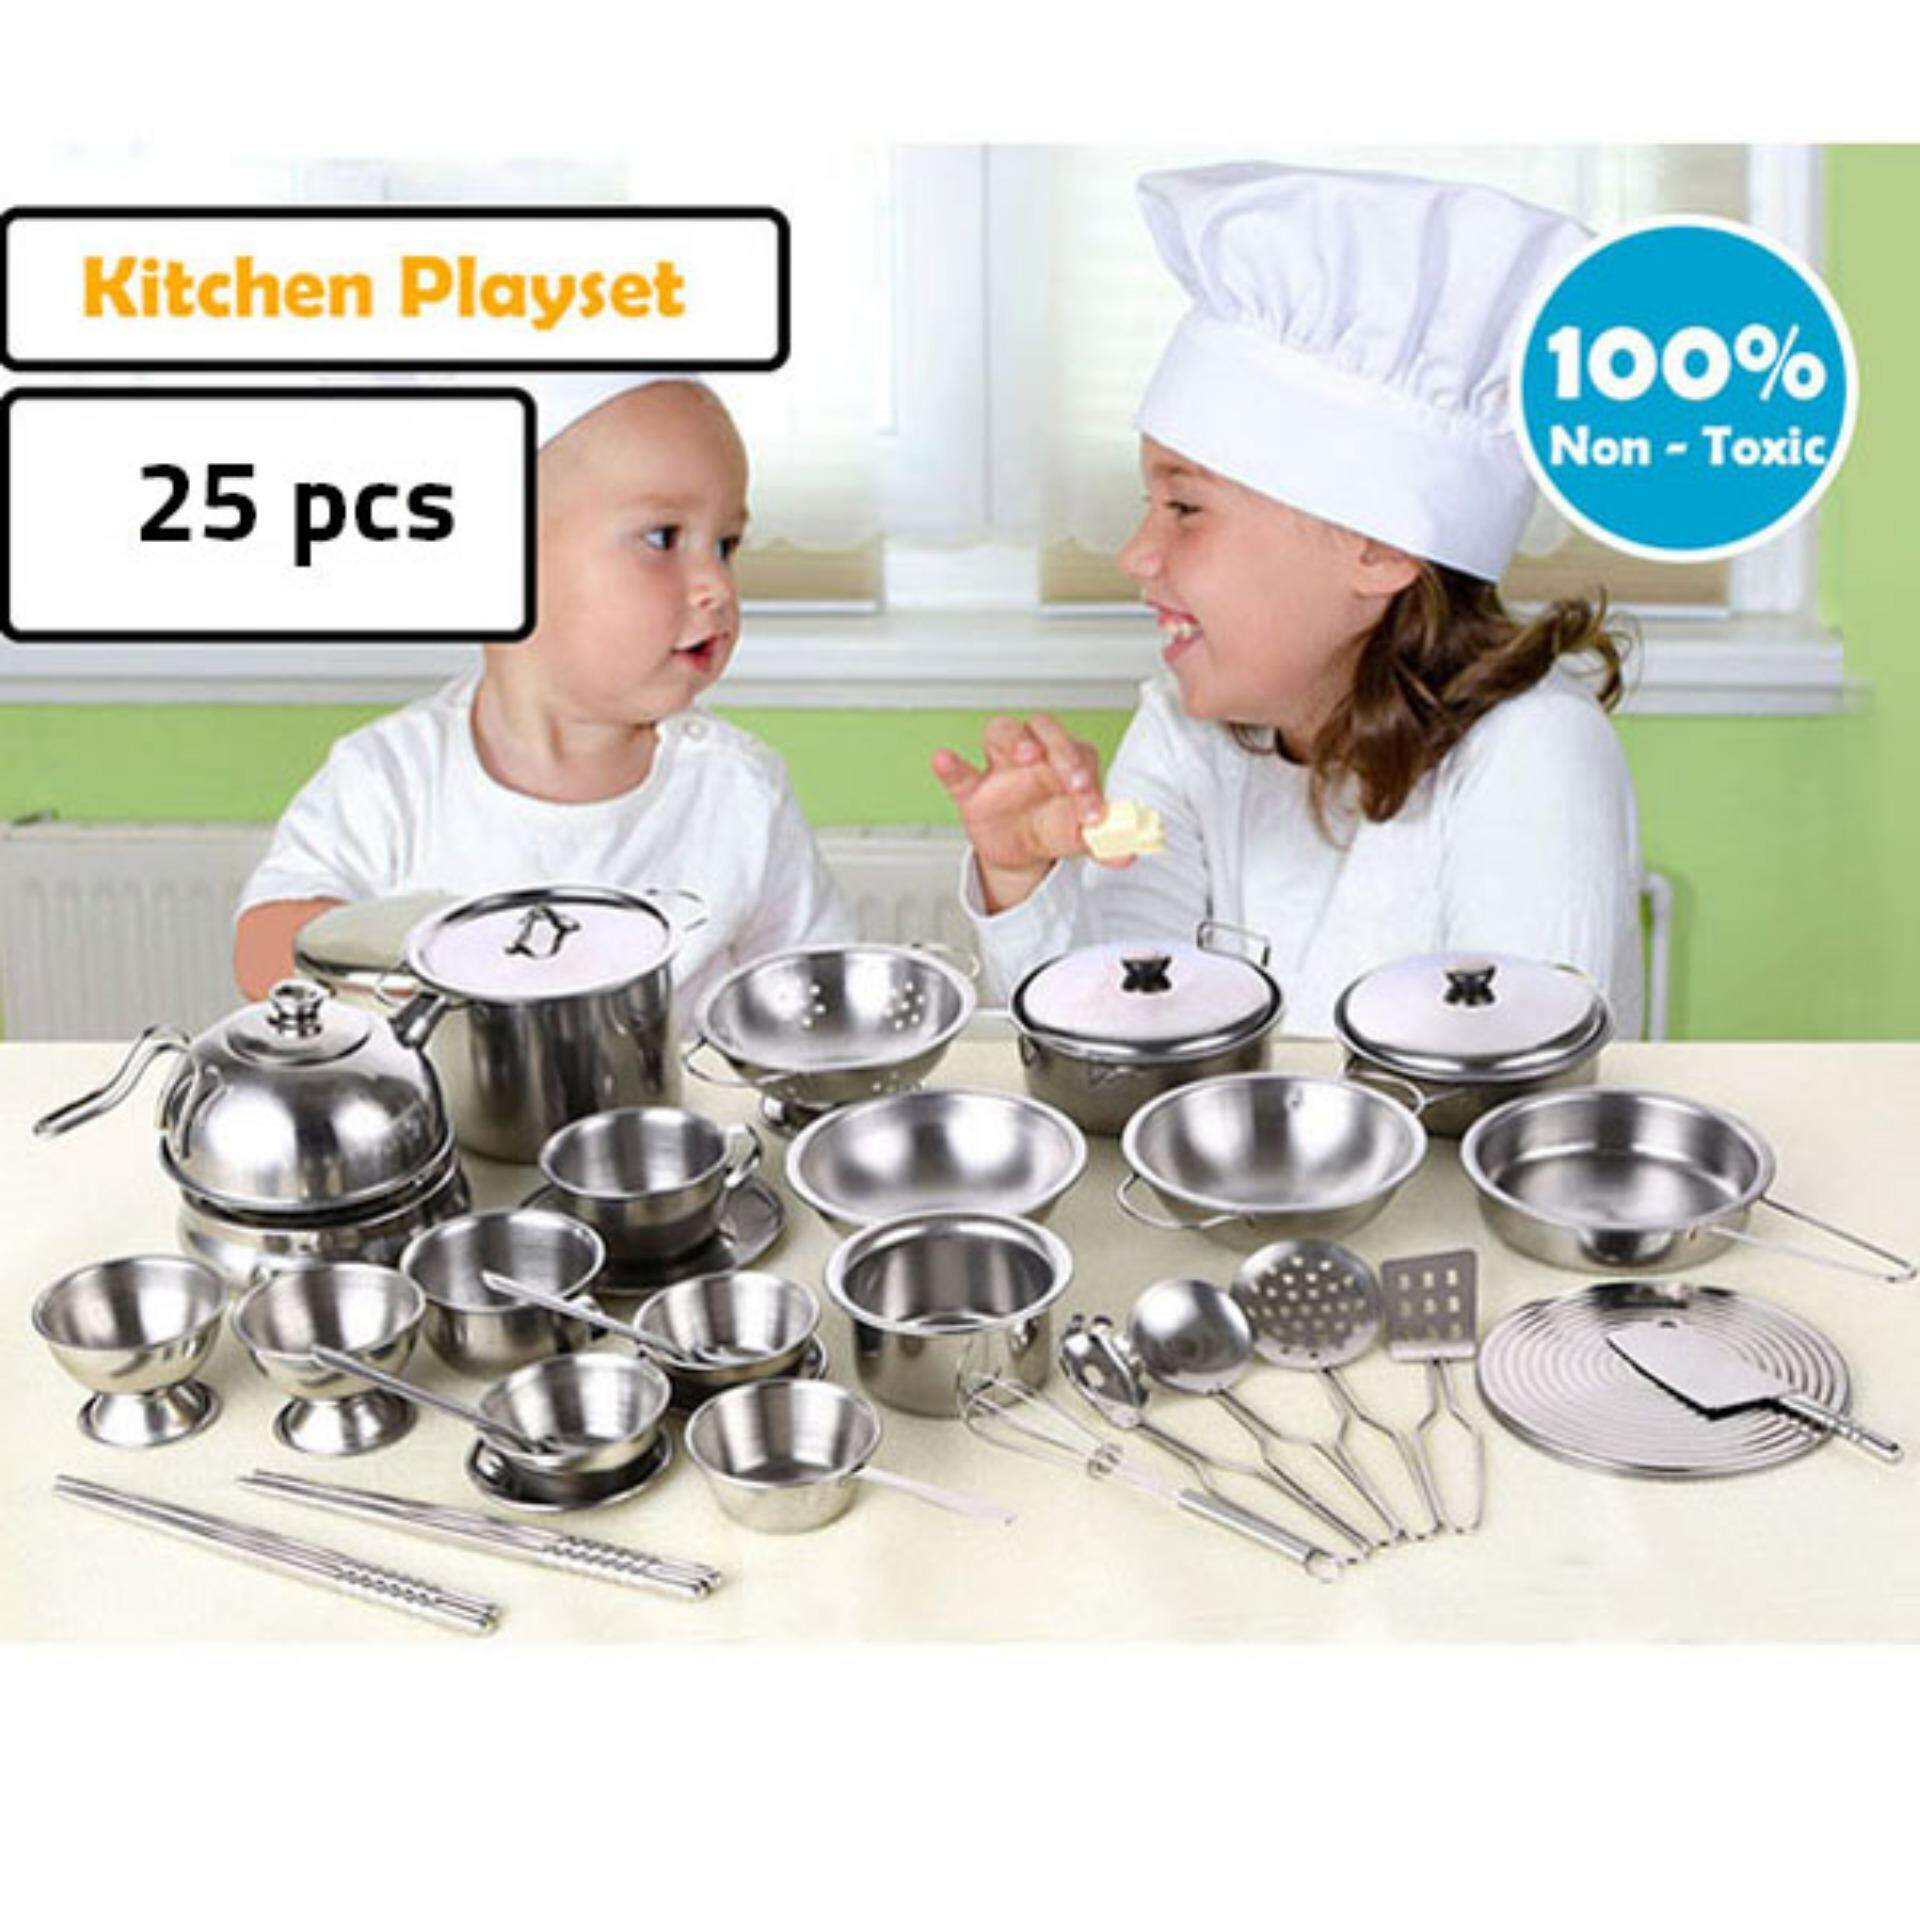 Realeos 25 PCS Kids Stainless Steel Cooking Kitchen Playset - R535